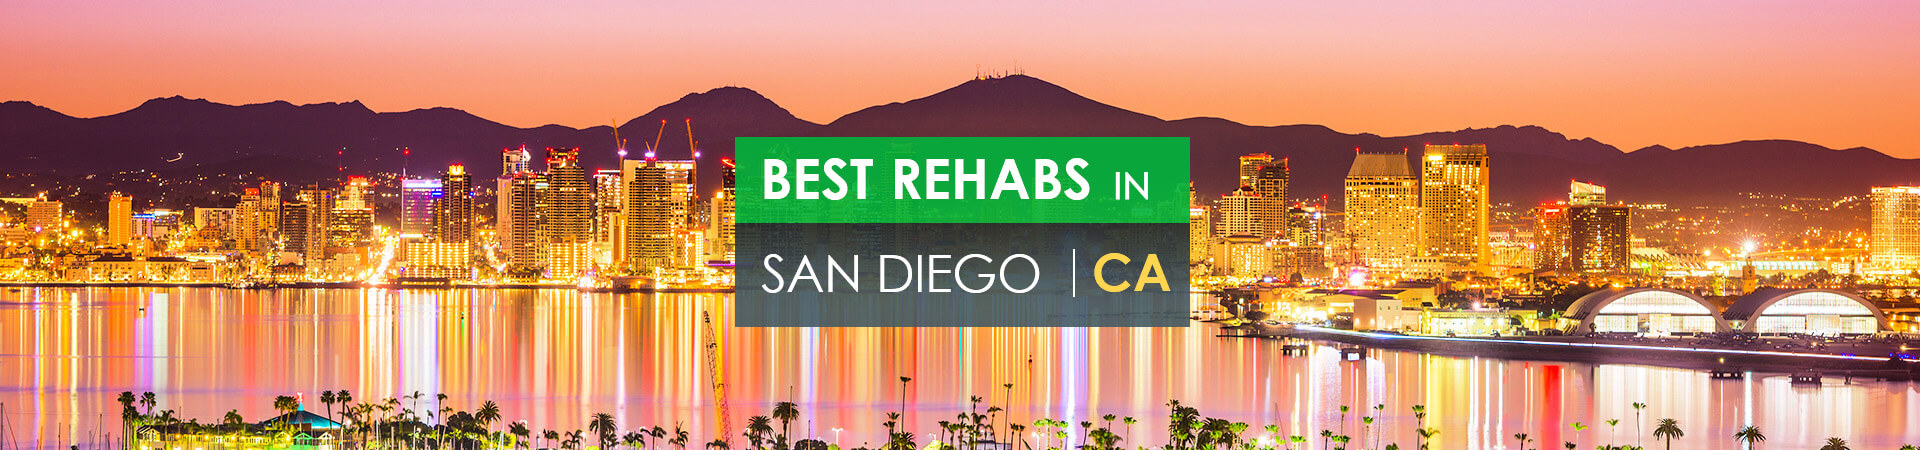 Best rehabs in San Diego, CA